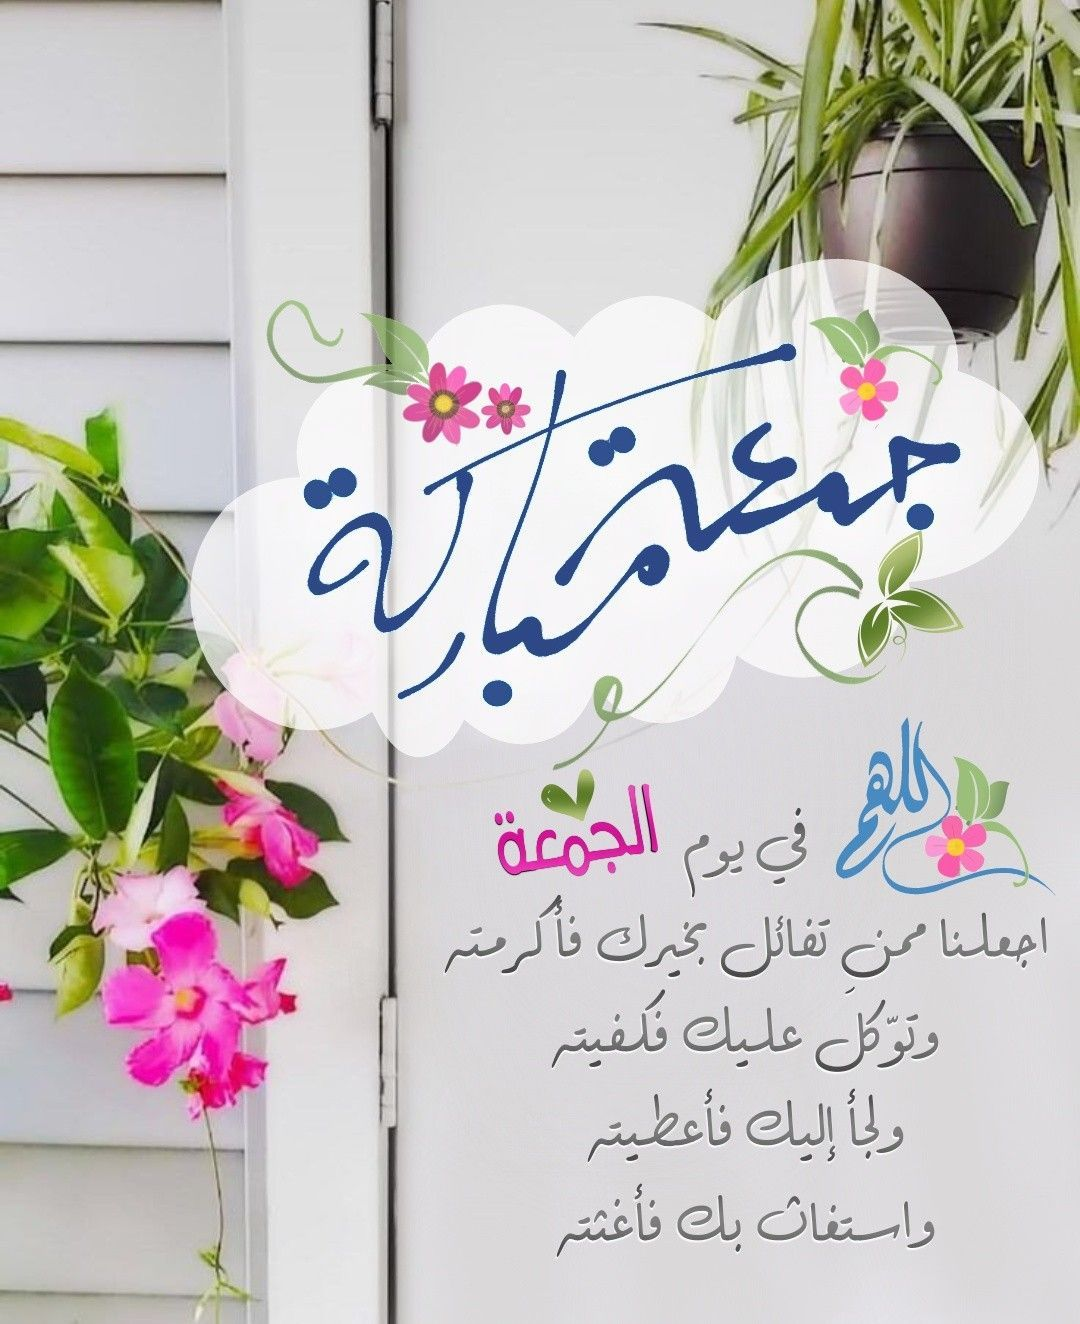 بطاقات جمعة طيبة Holy Friday Beautiful Morning Messages Evening Greetings